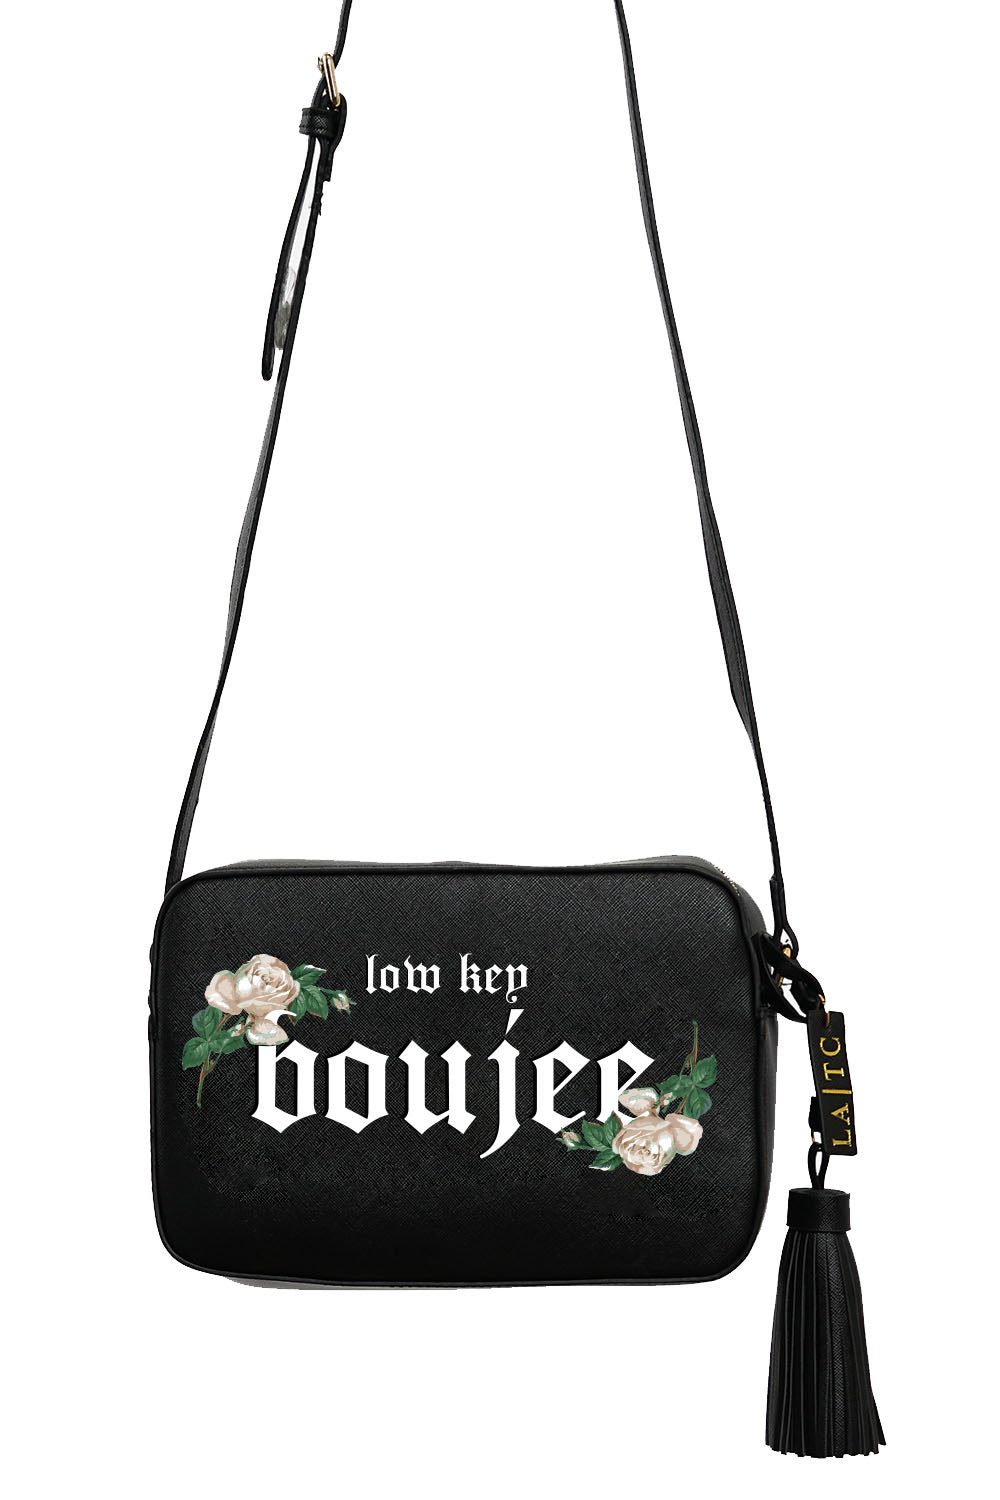 VEGAN CROSSBODY BAG - Low Key Boujee (Black)